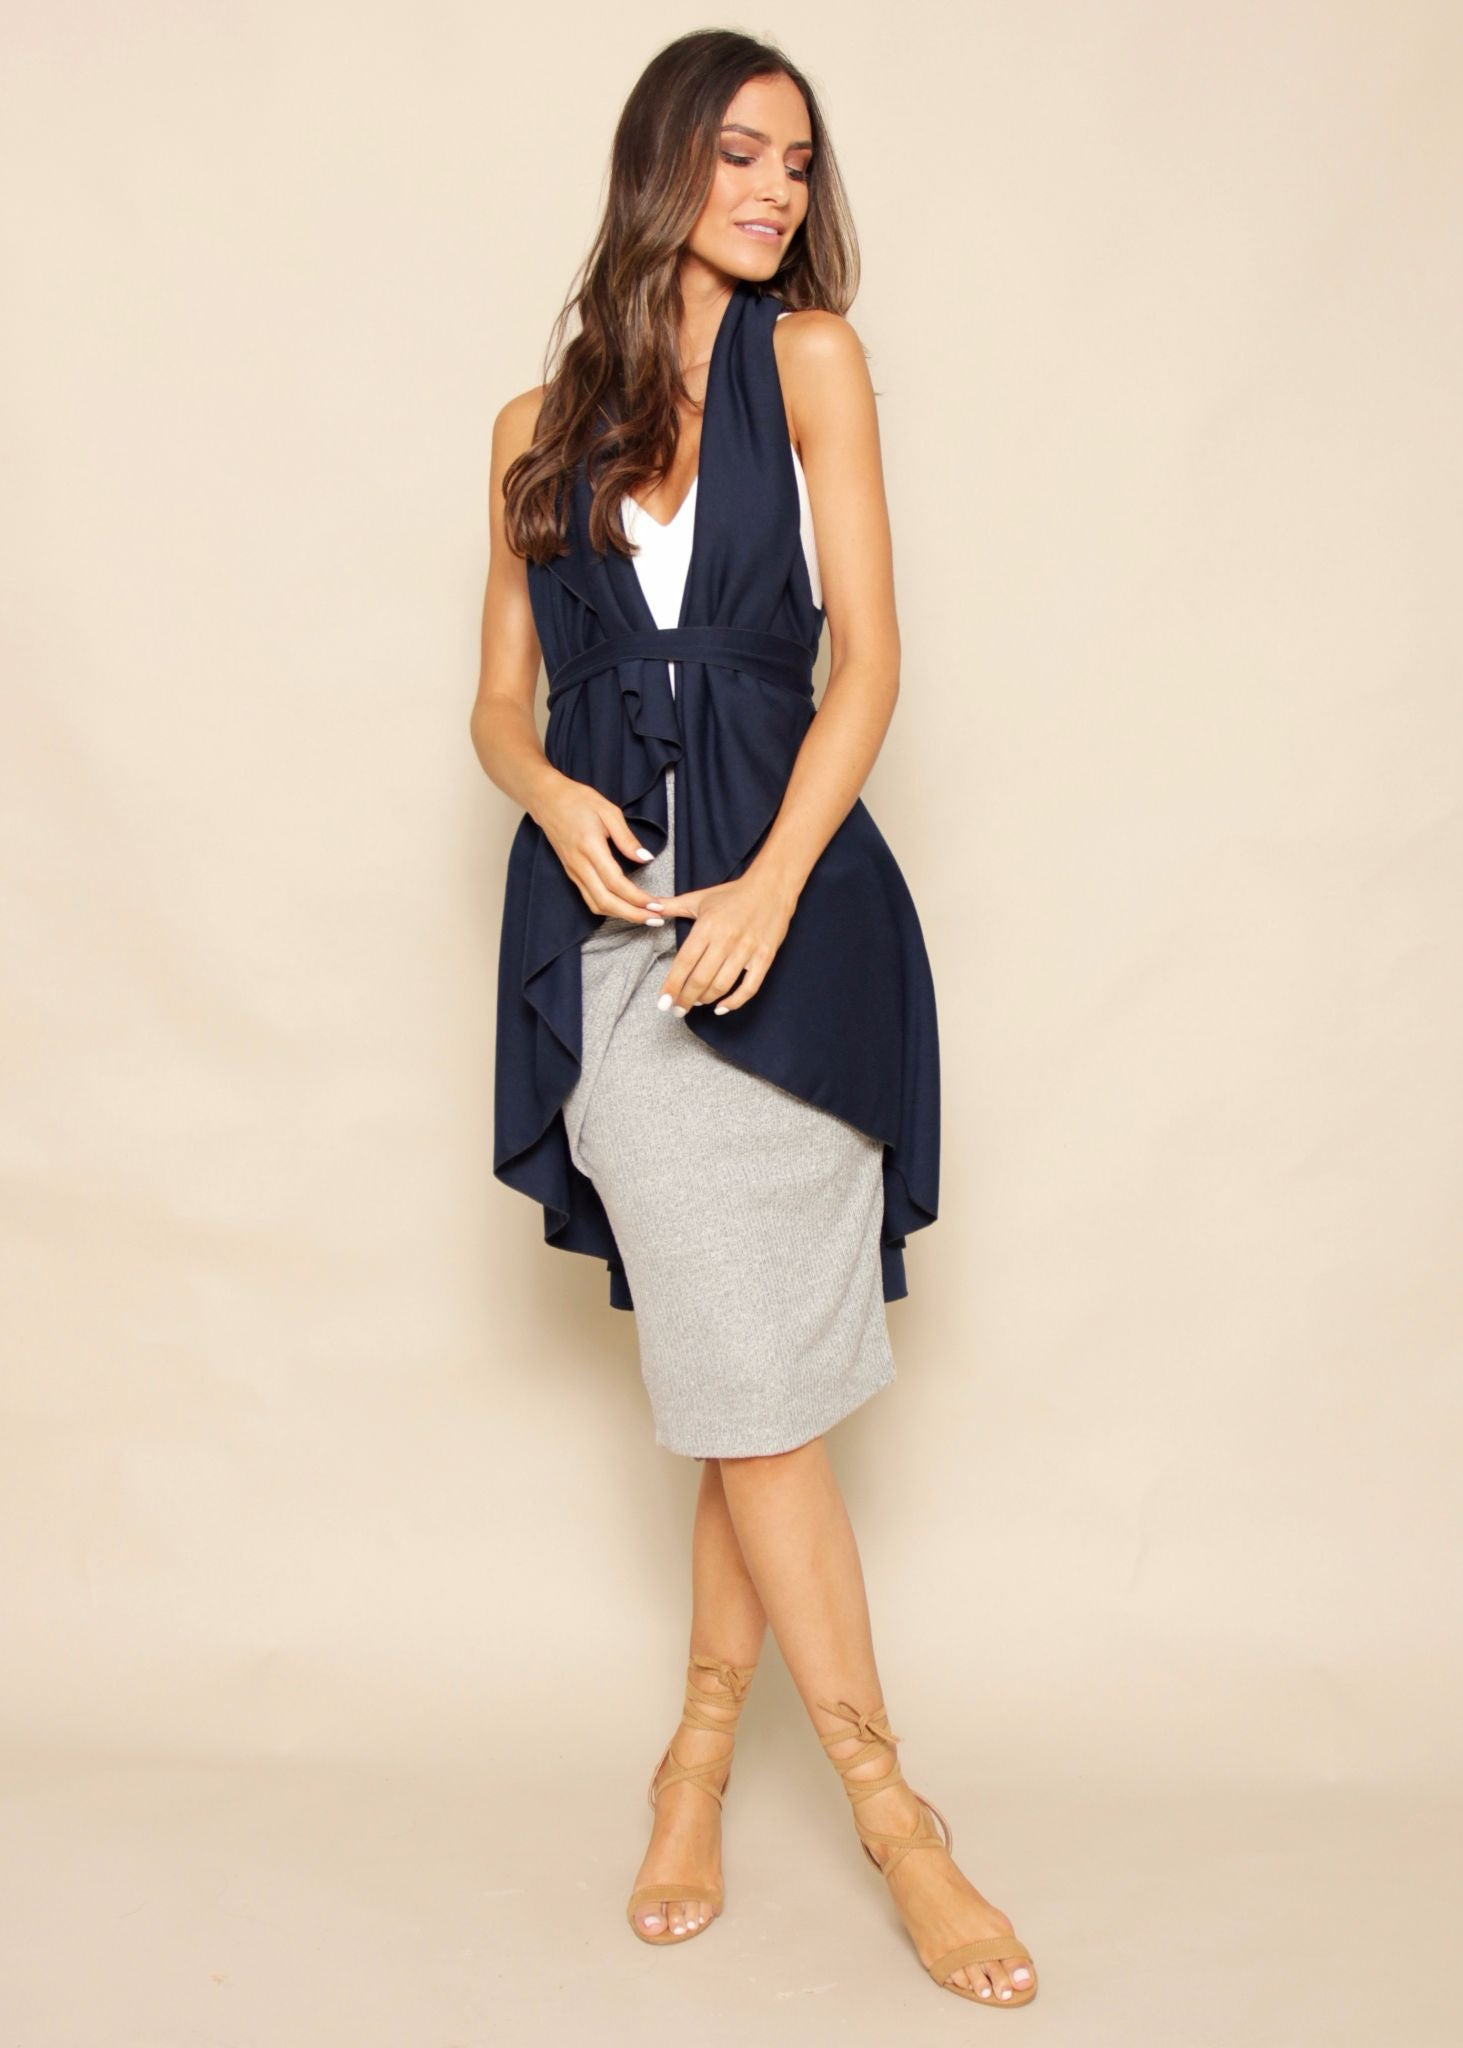 Keep Dreaming Sleeveless Cape - Navy